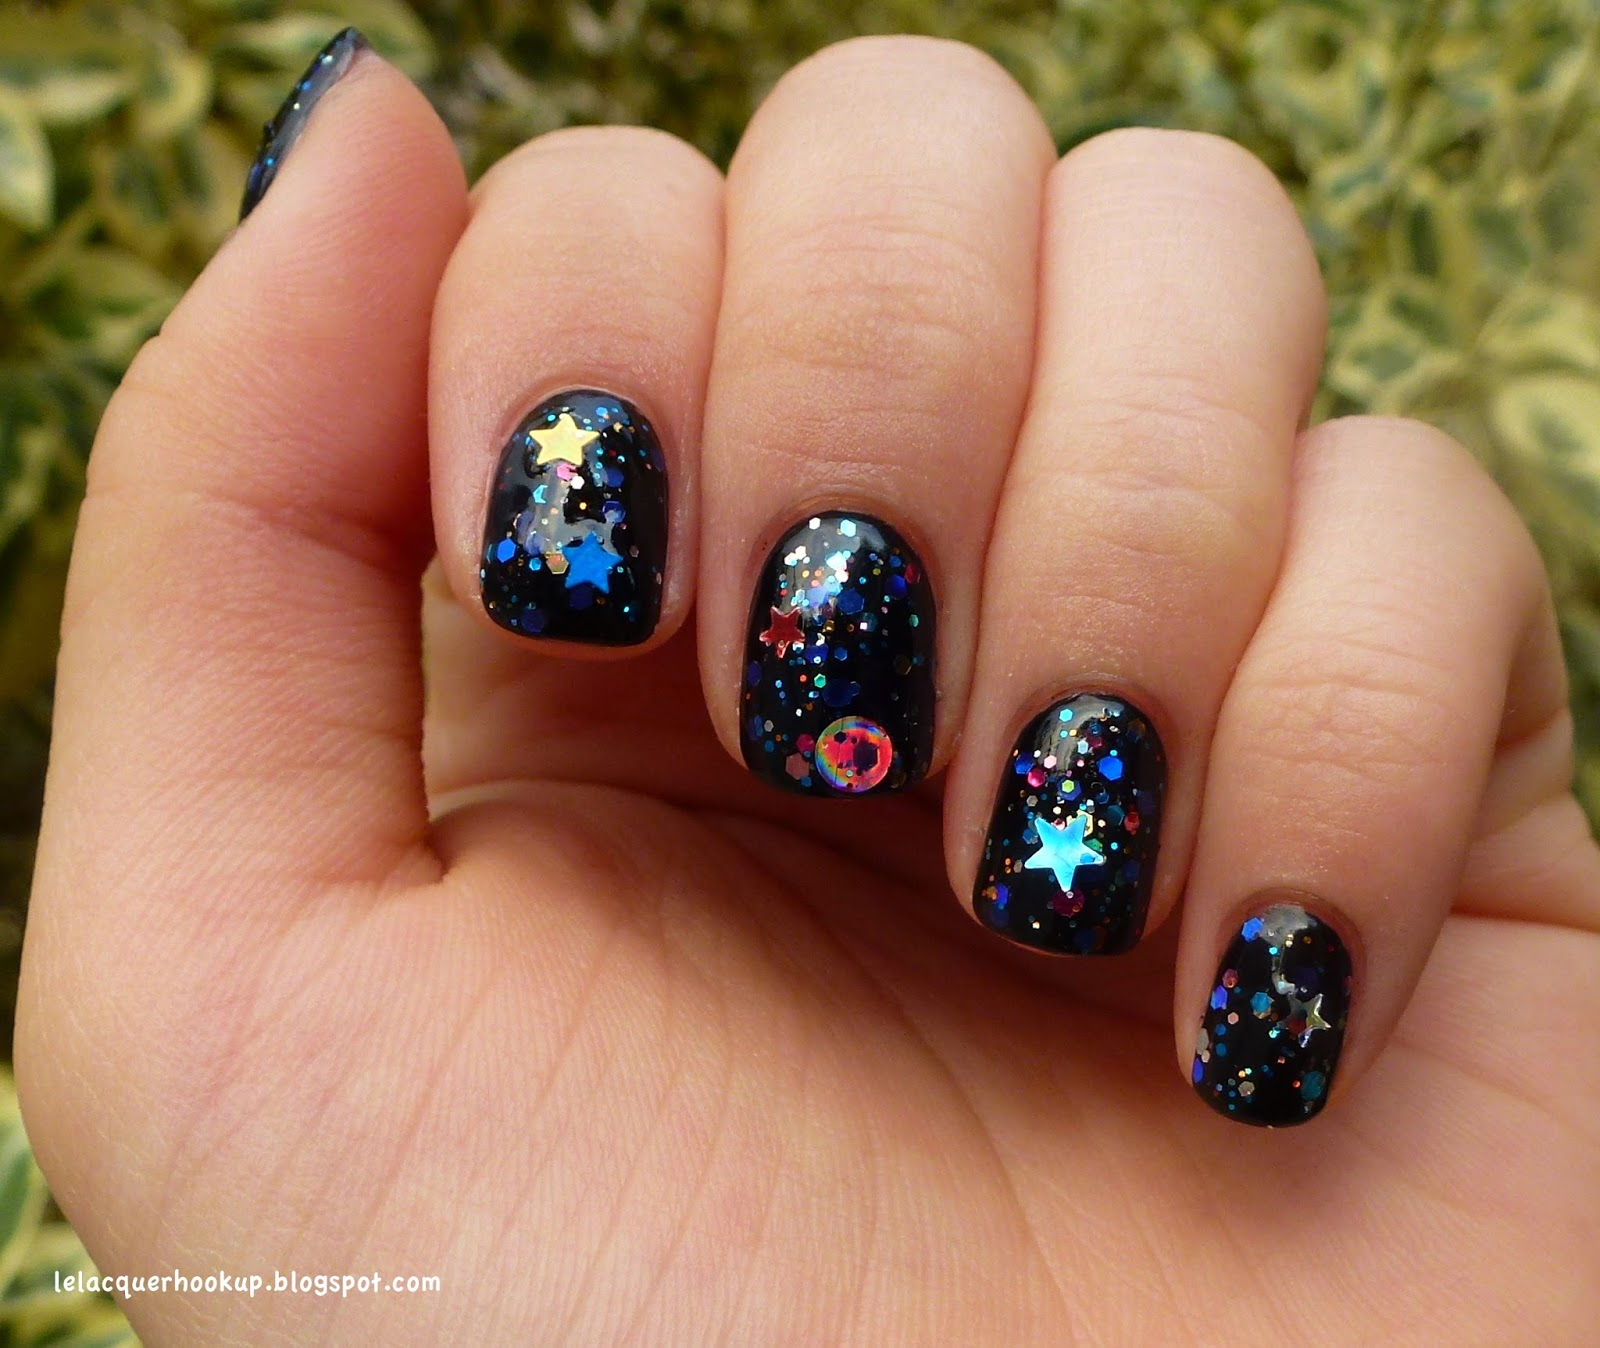 LE LACQUER HOOK UP: Starrily Galaxy